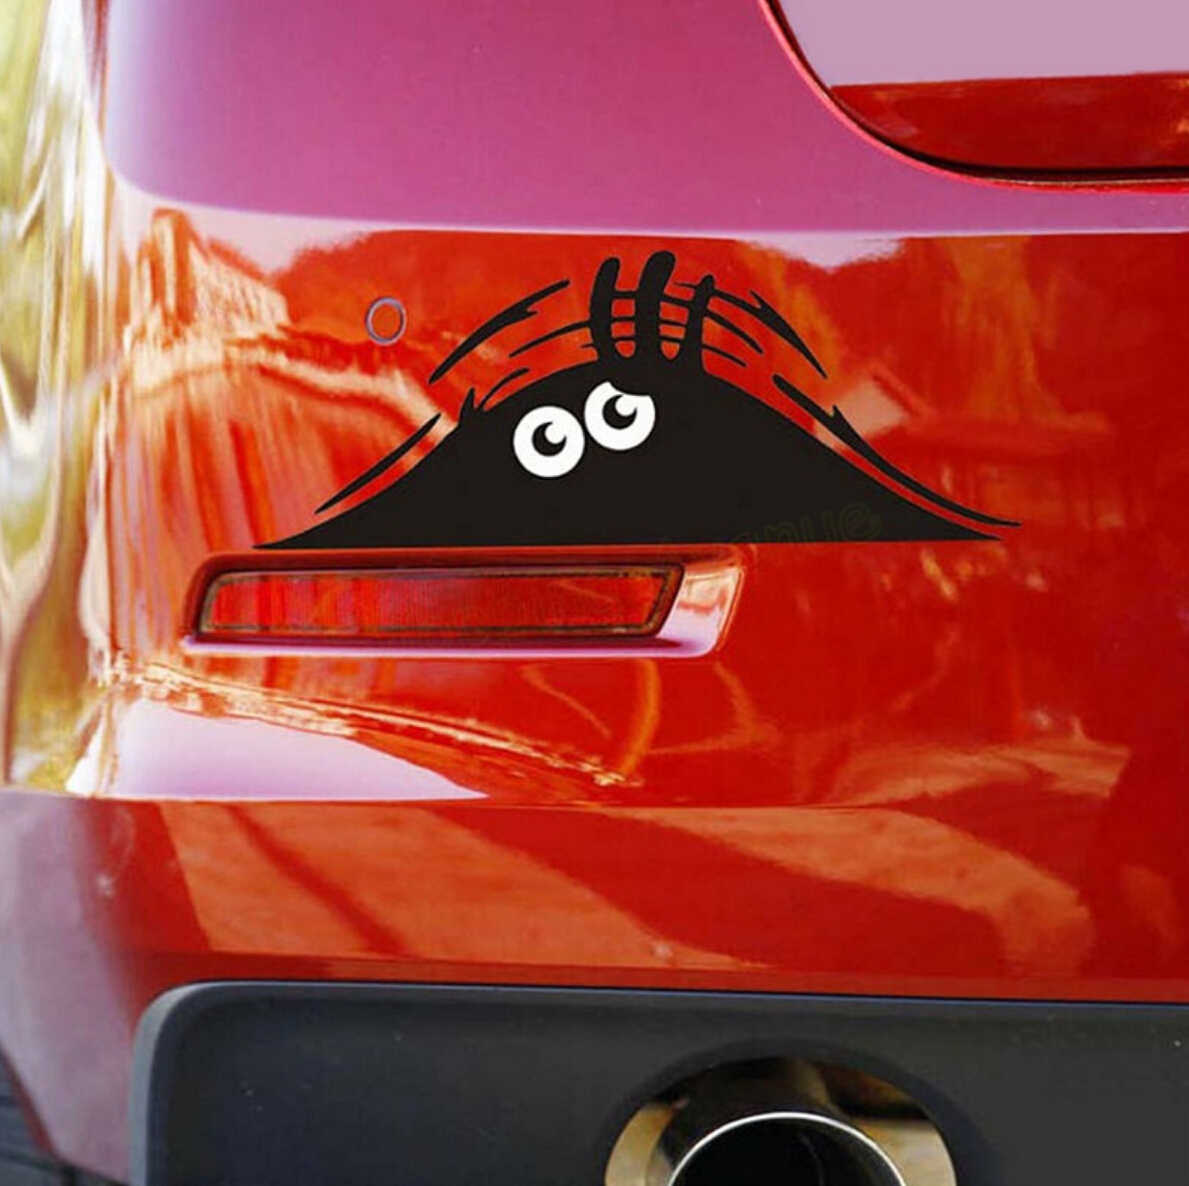 Funny Car Sticker vinyl decal Car-Styling for HAVAL all Model H3 H5 H6 H7 H8 H9 H8 M4 SC C30 C50